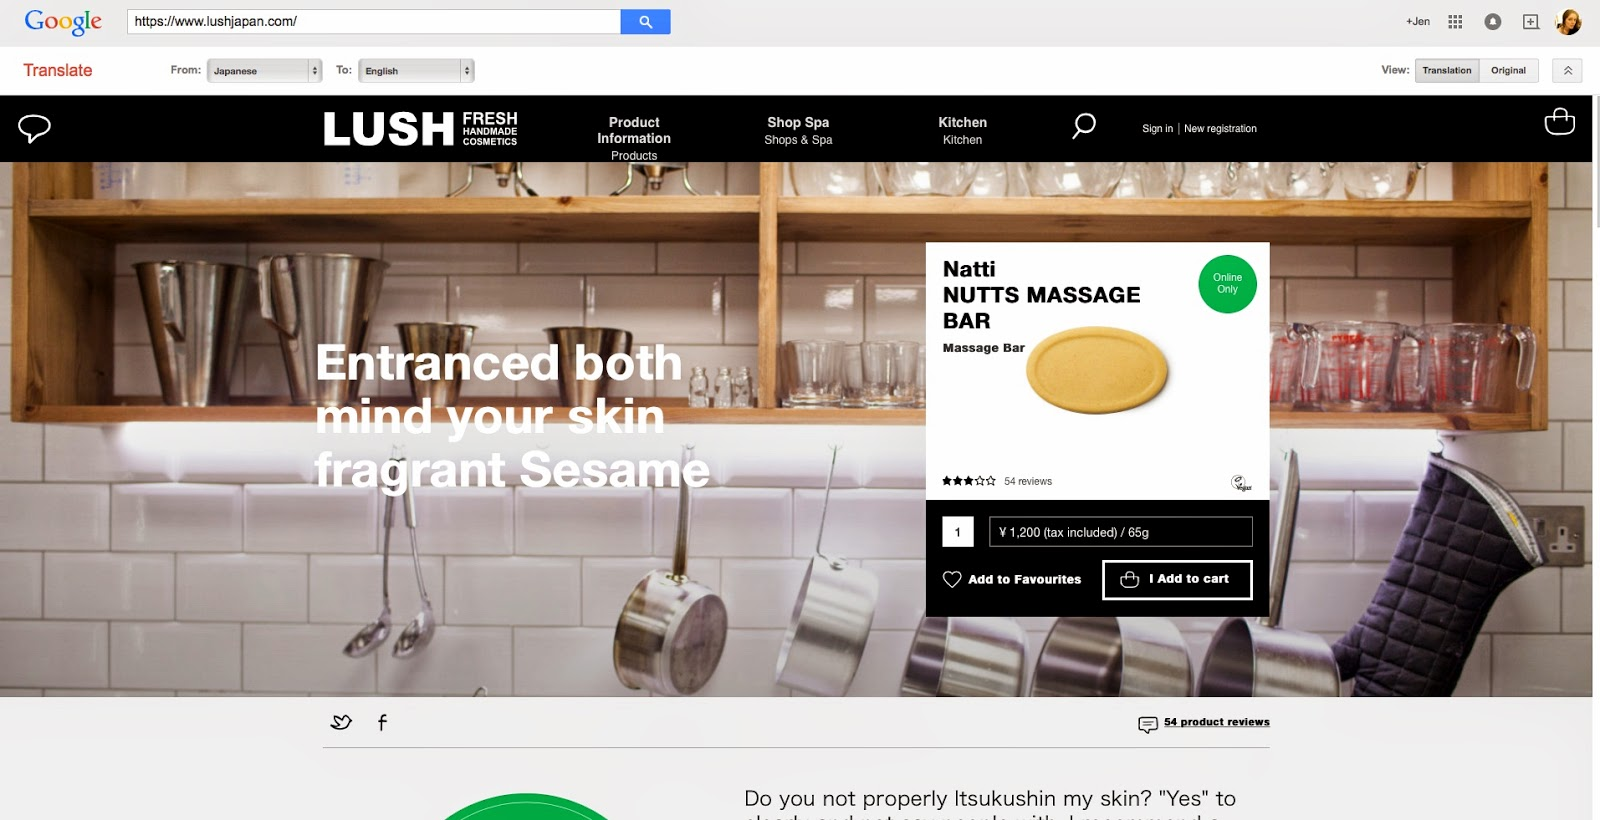 All Things Lush UK: How To Order From The Japanese Lush ...